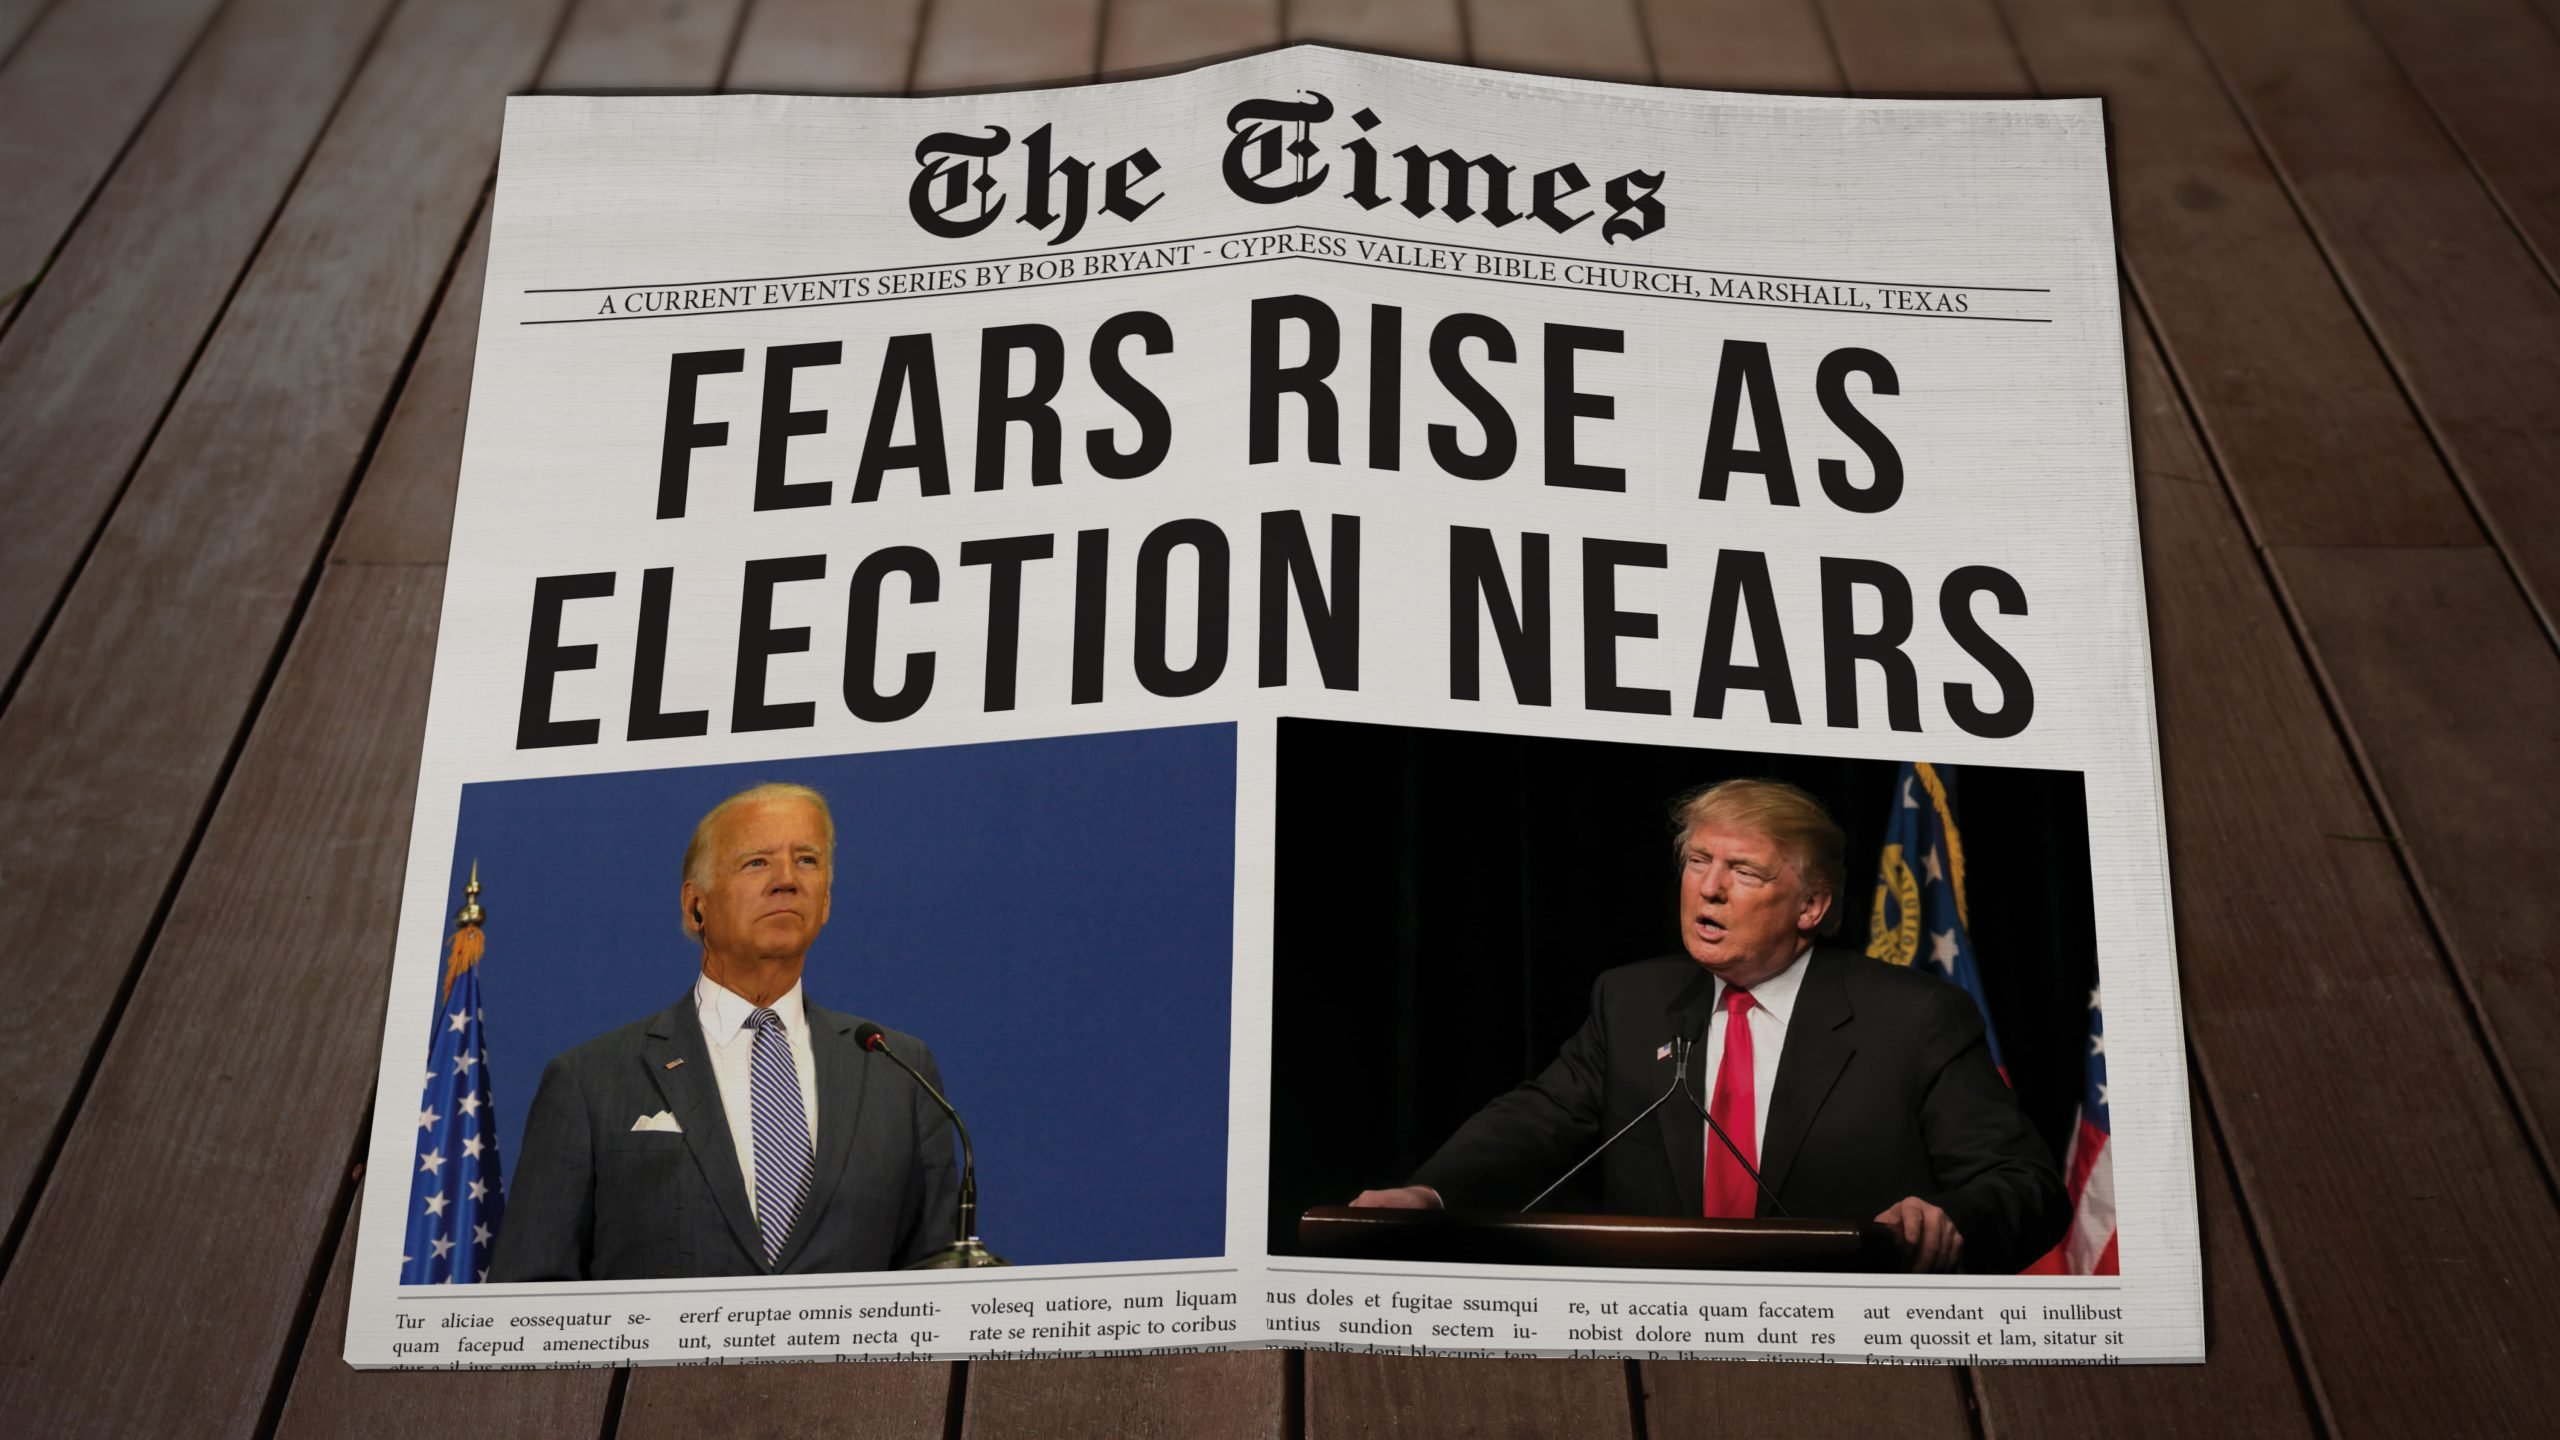 Fears Rise As Election Nears